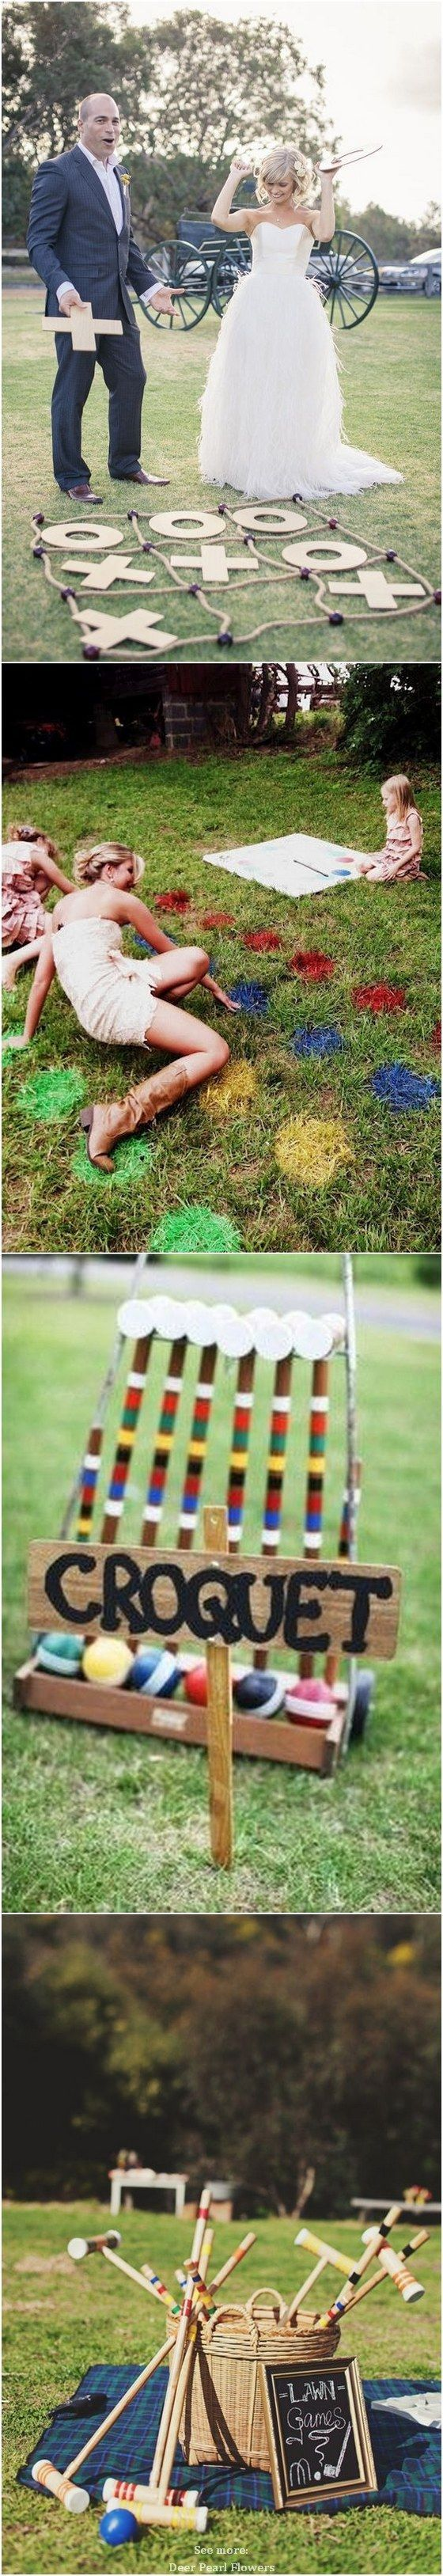 552 best outdoor weddings images on pinterest weddings ceremony 45 fun outdoor wedding reception lawn game ideas junglespirit Images